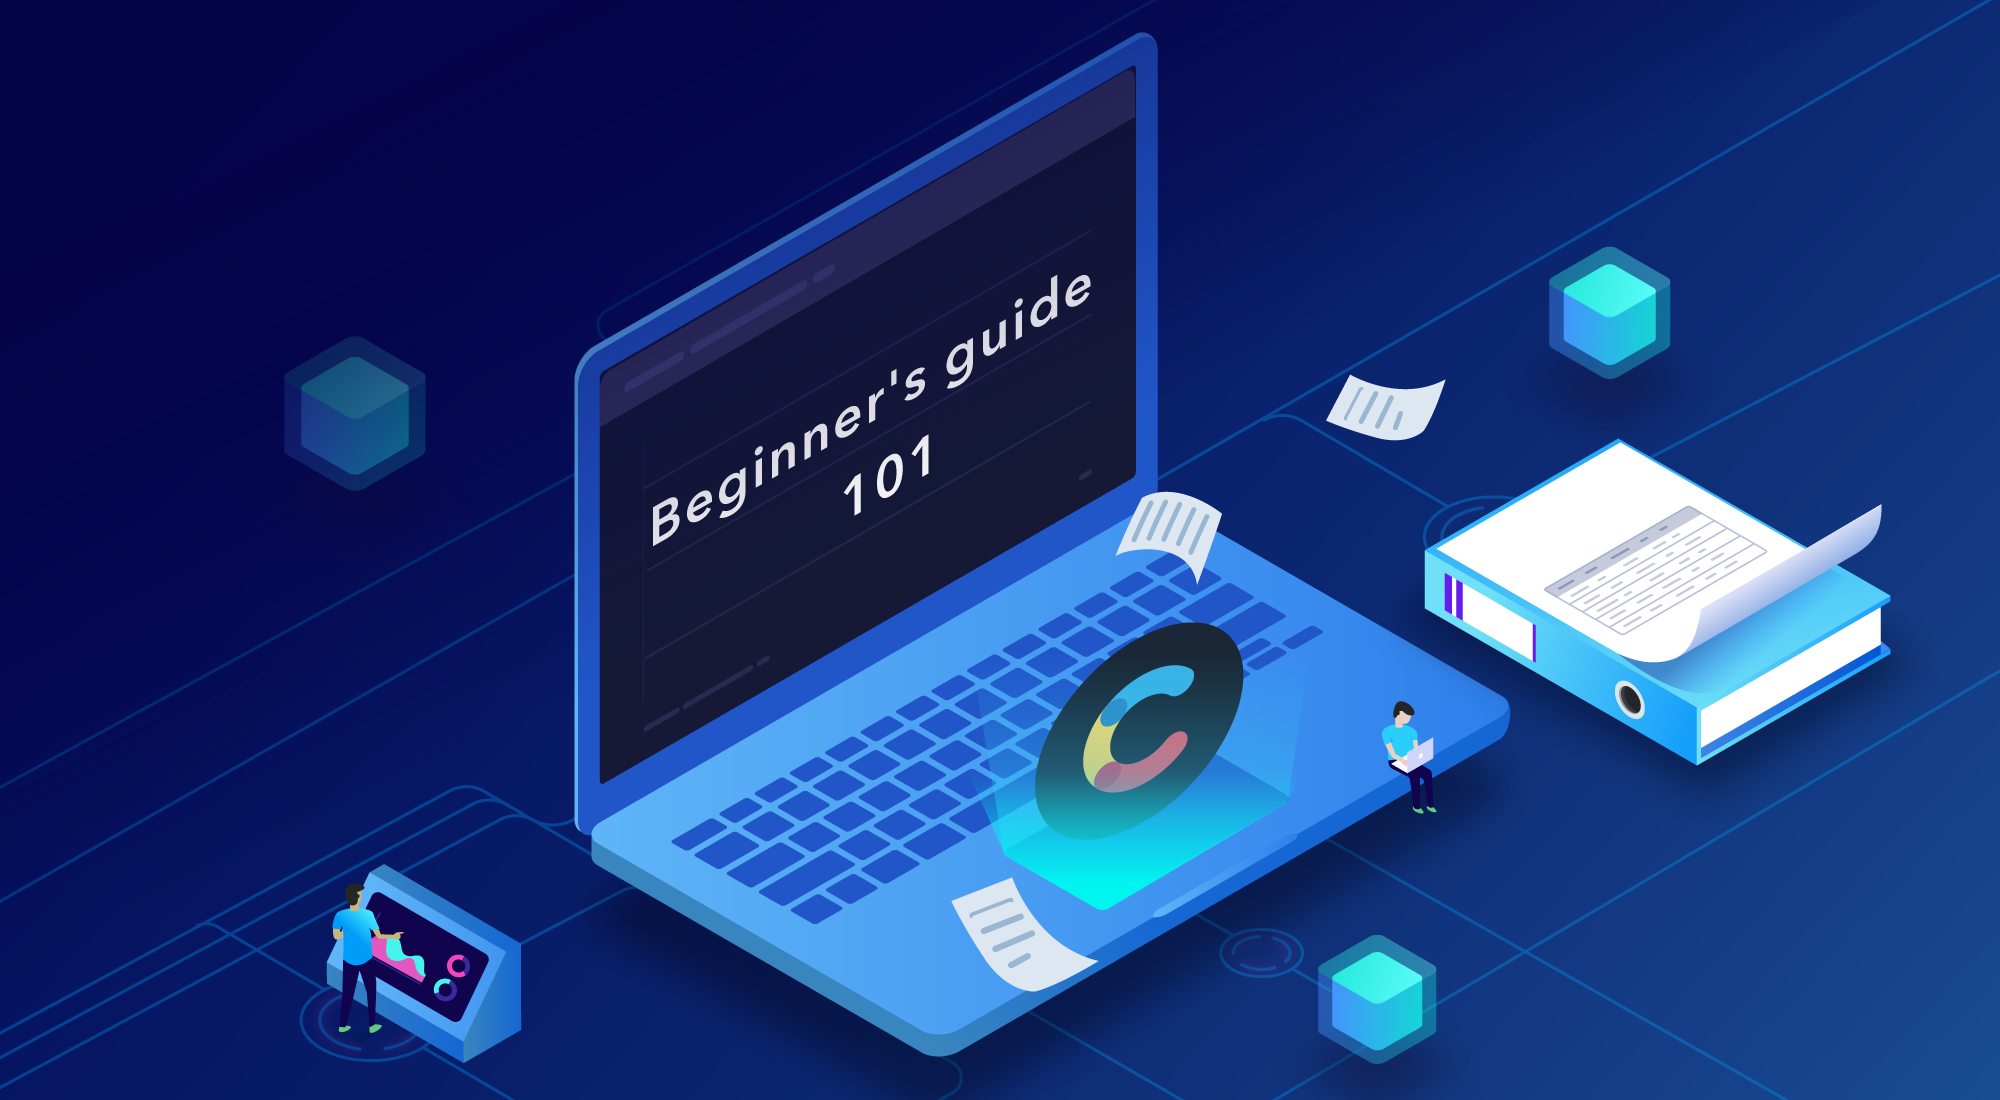 The beginner's guide to Contentful